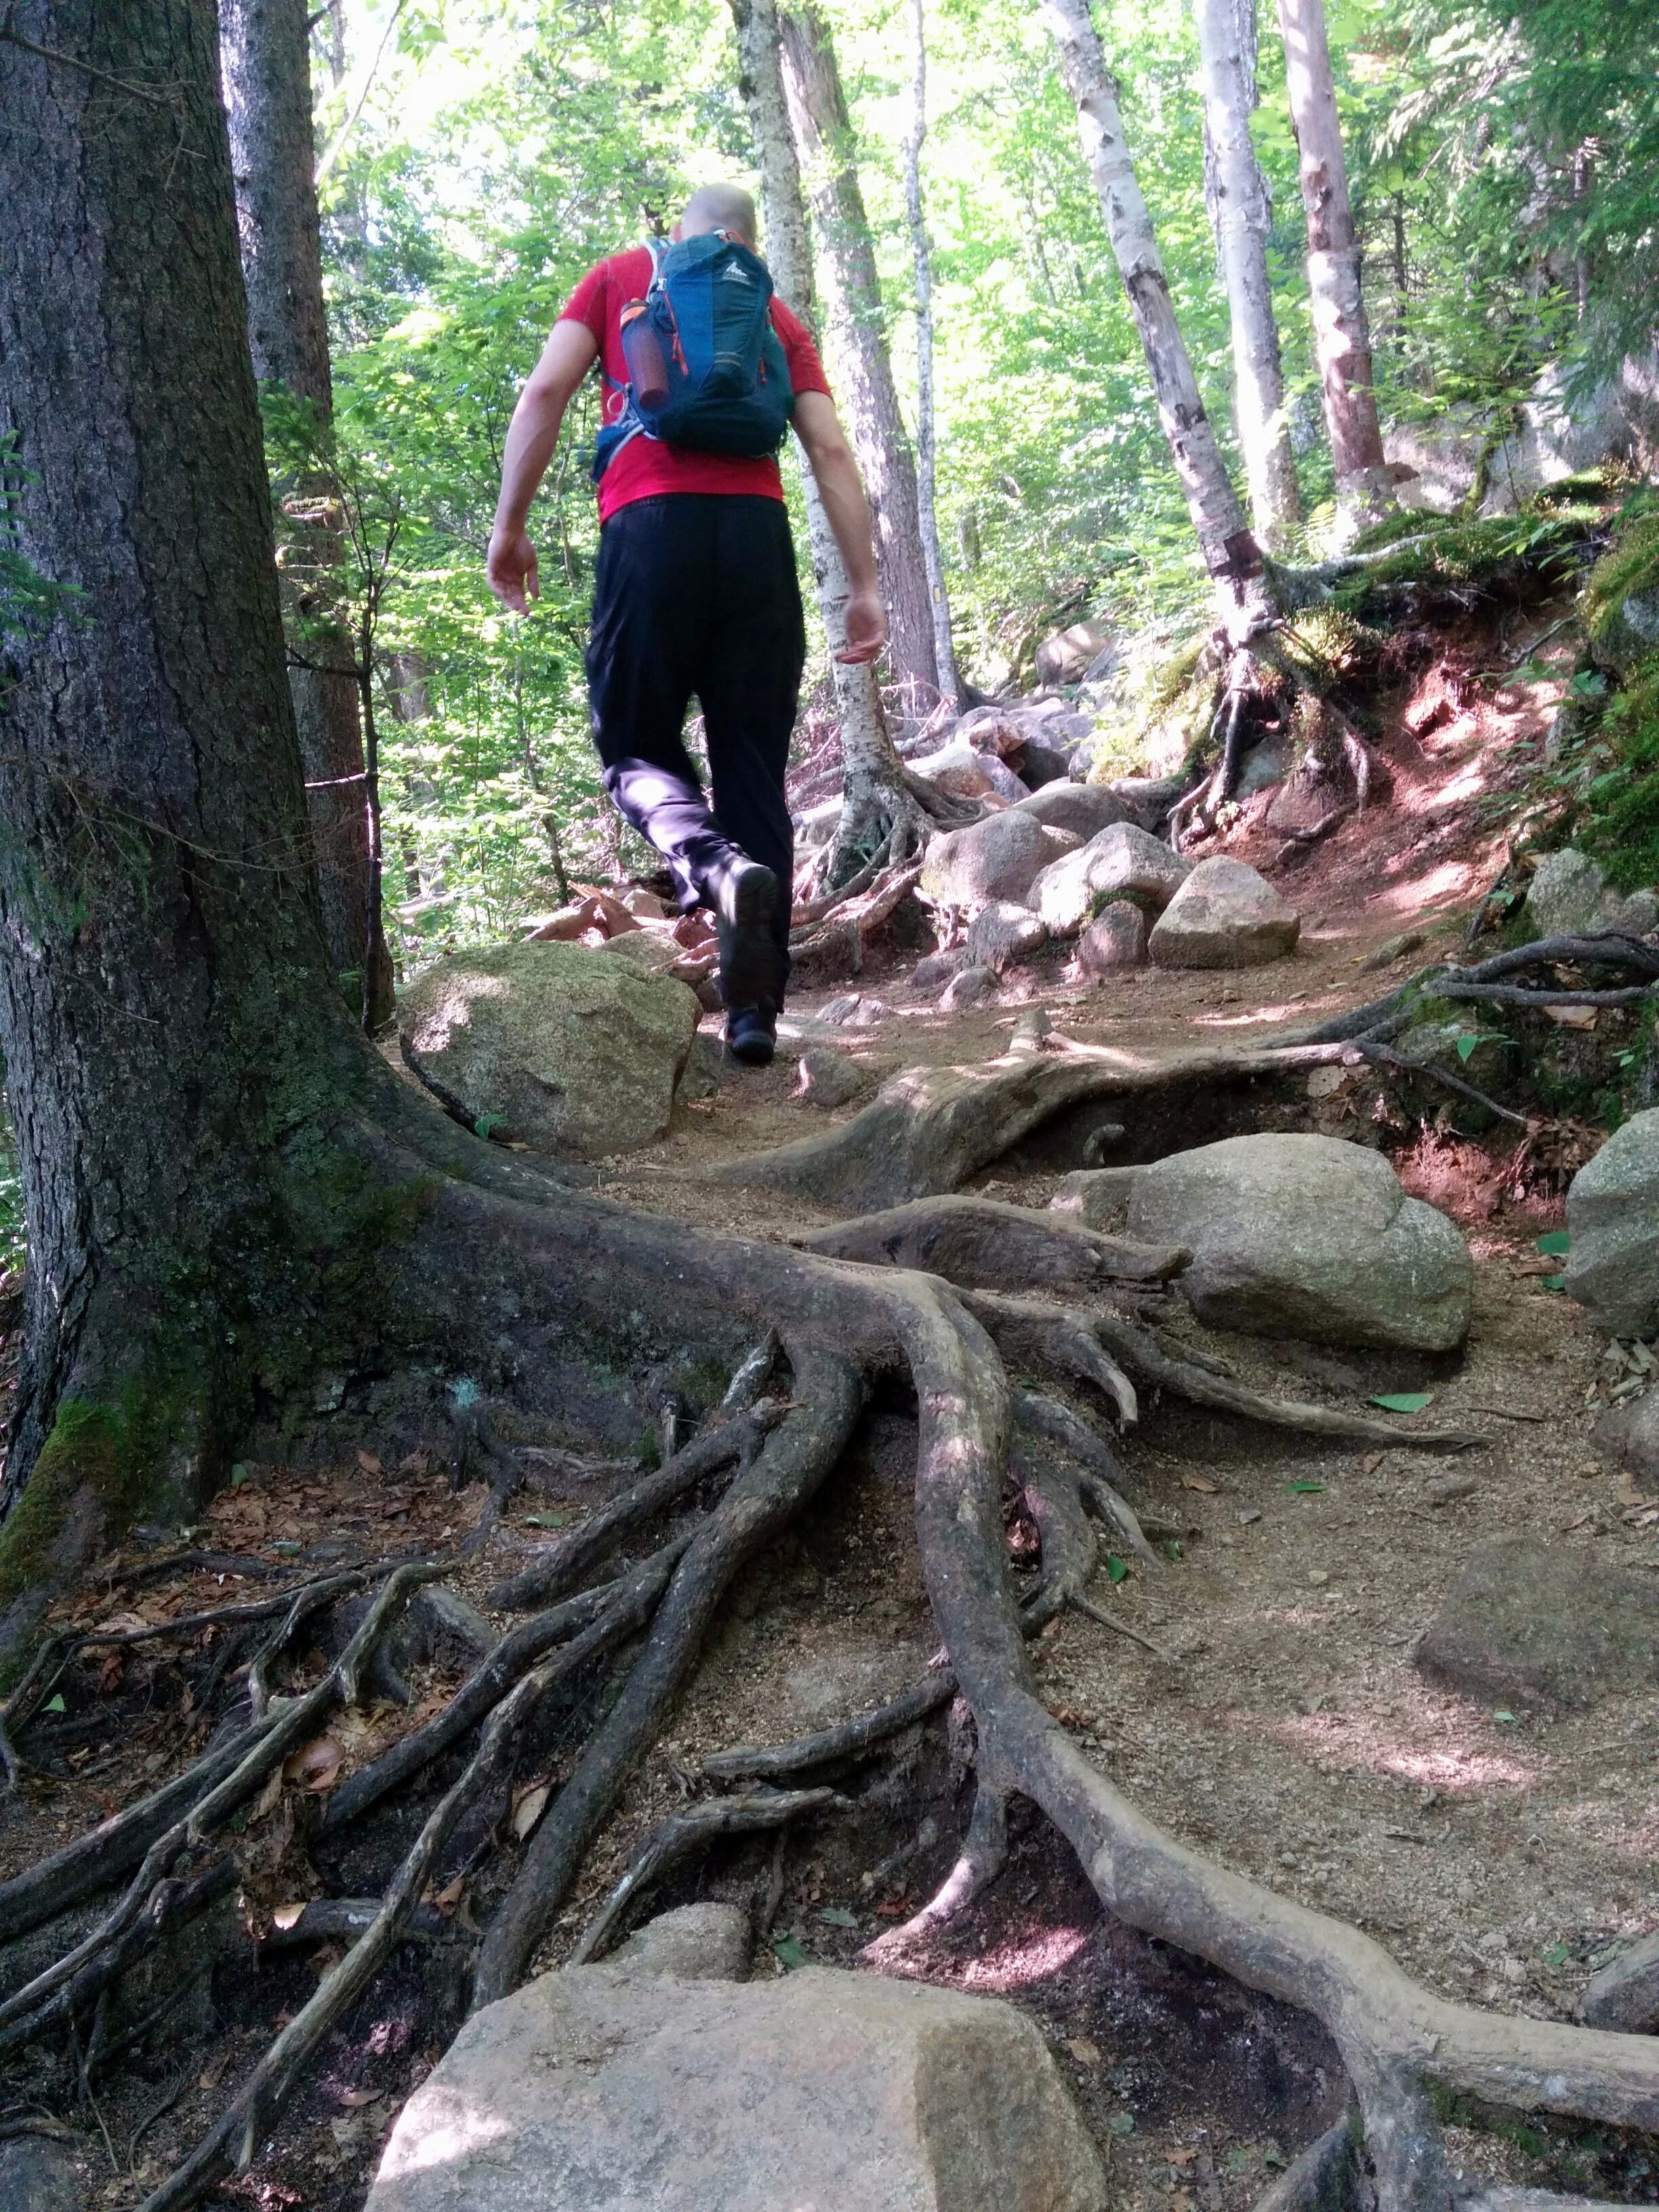 Photo: Hiking among the roots and rocks.